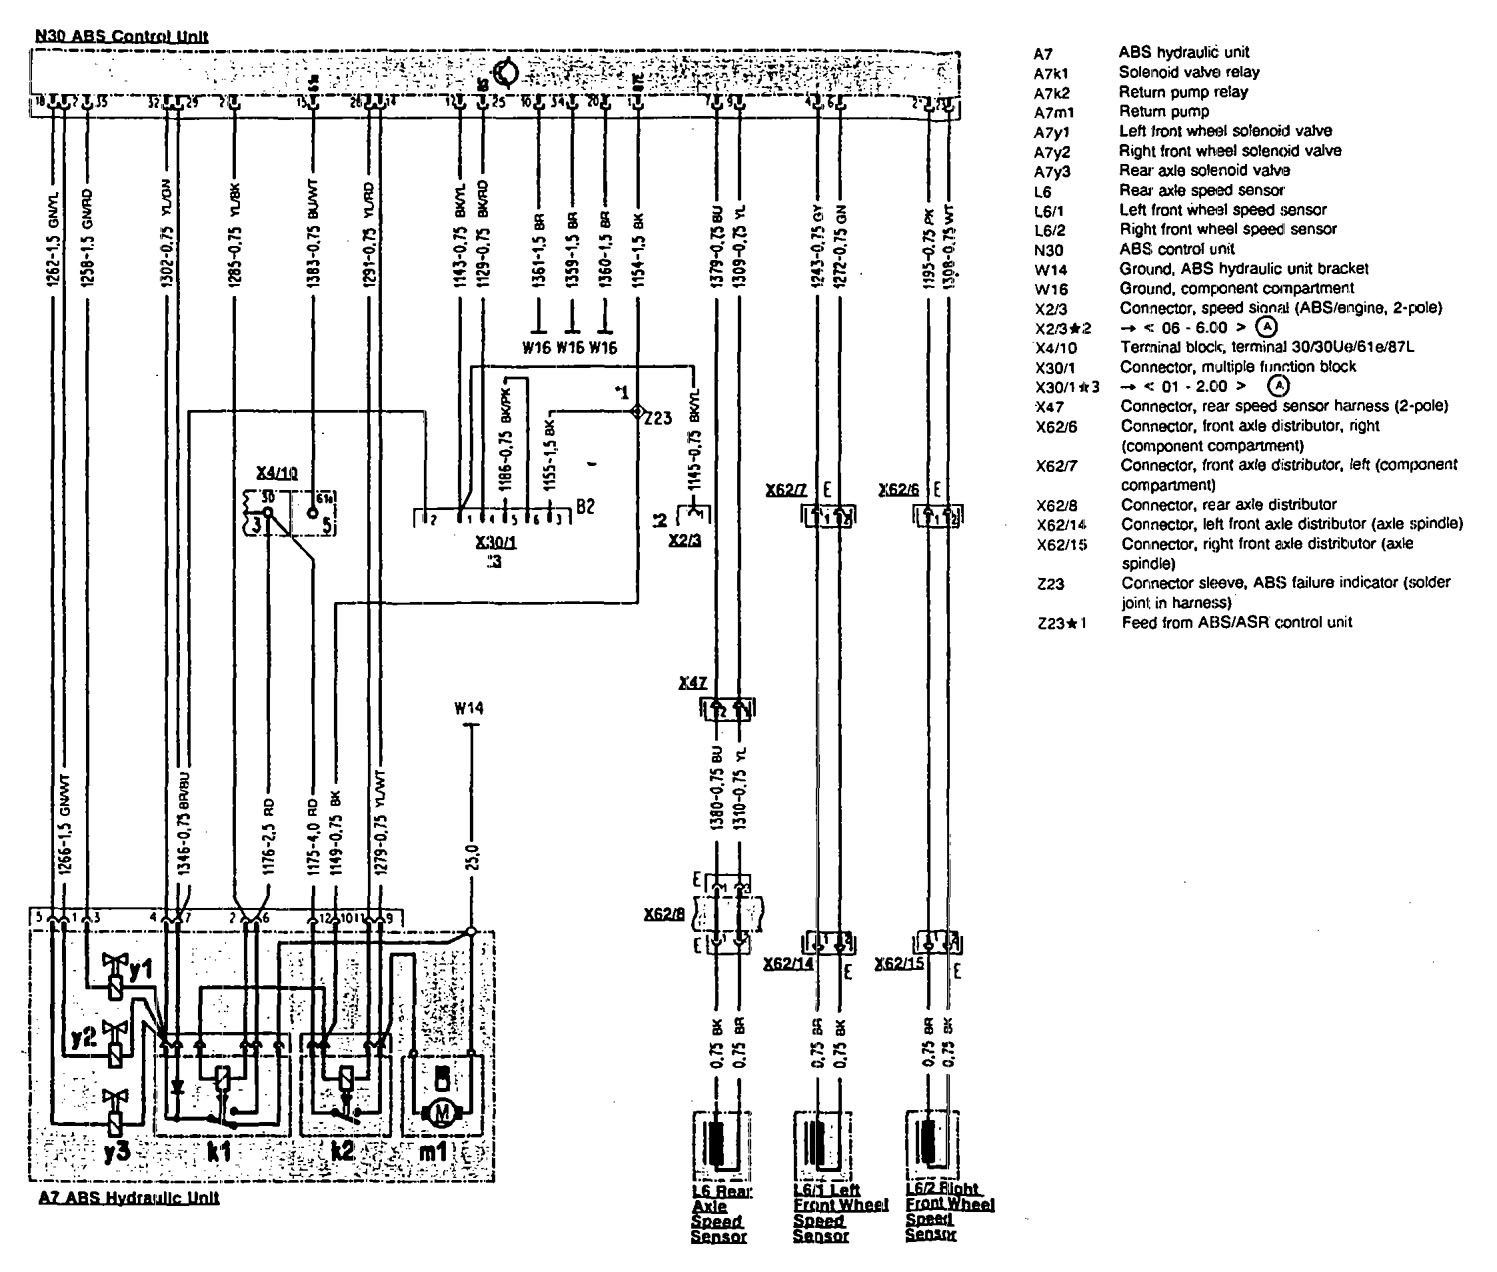 Wiring Diagram Mercedes Vito : Mercedes abs wiring diagram smart diagrams